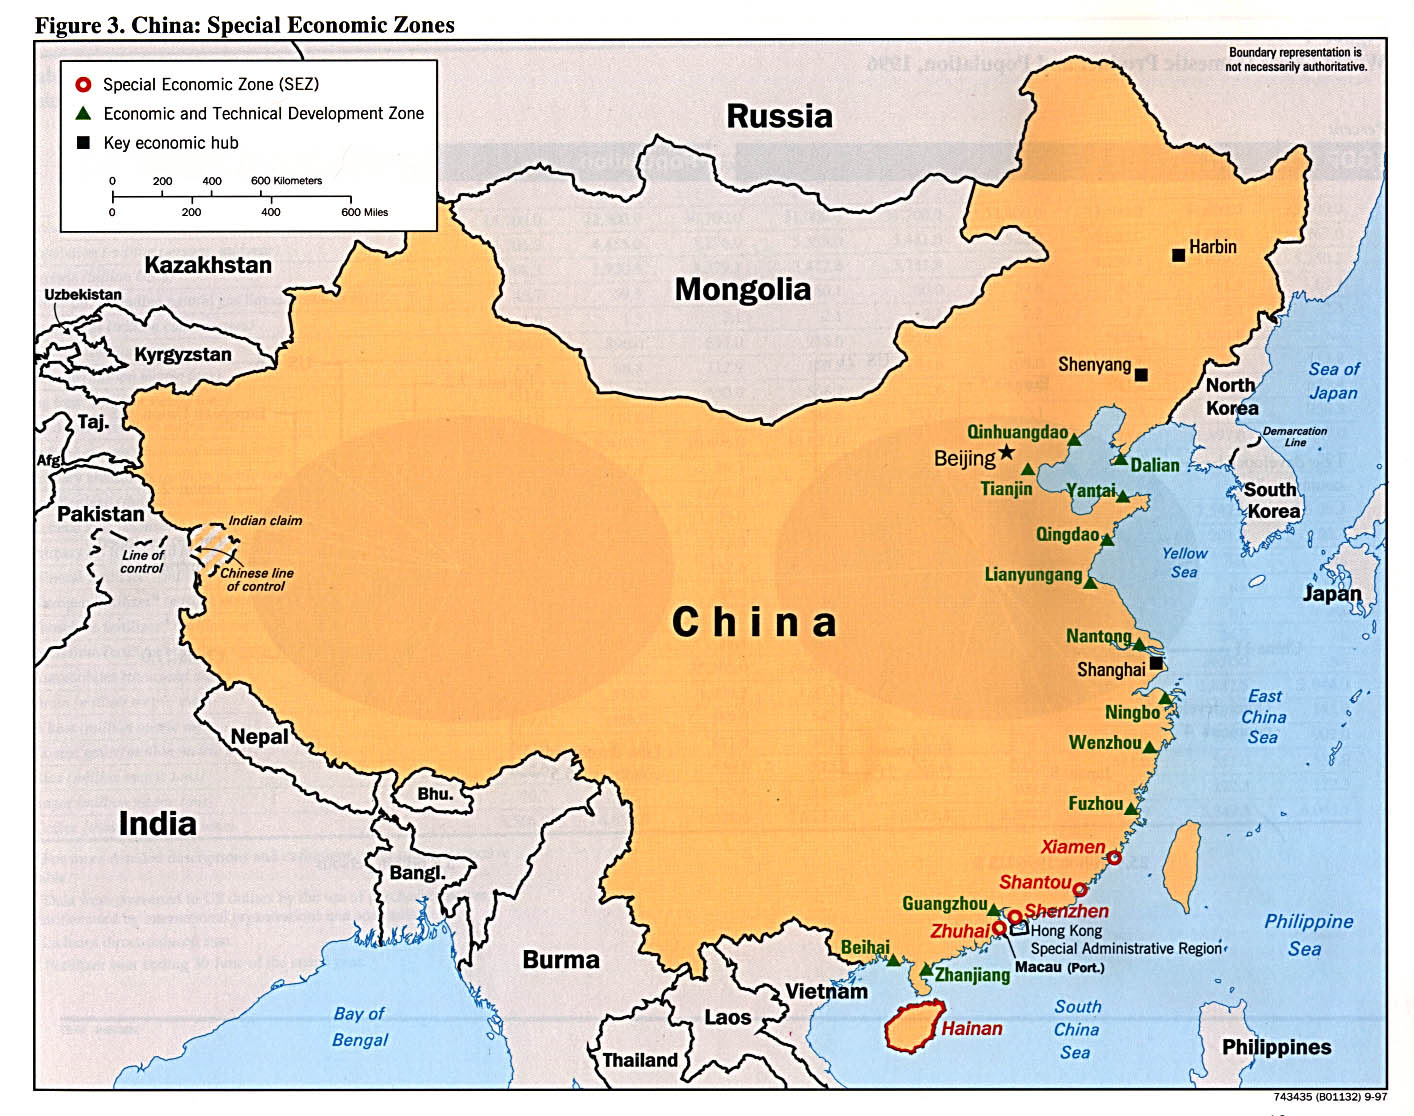 http://www.lib.utexas.edu/maps/middle_east_and_asia/china_specialec_97.jpg